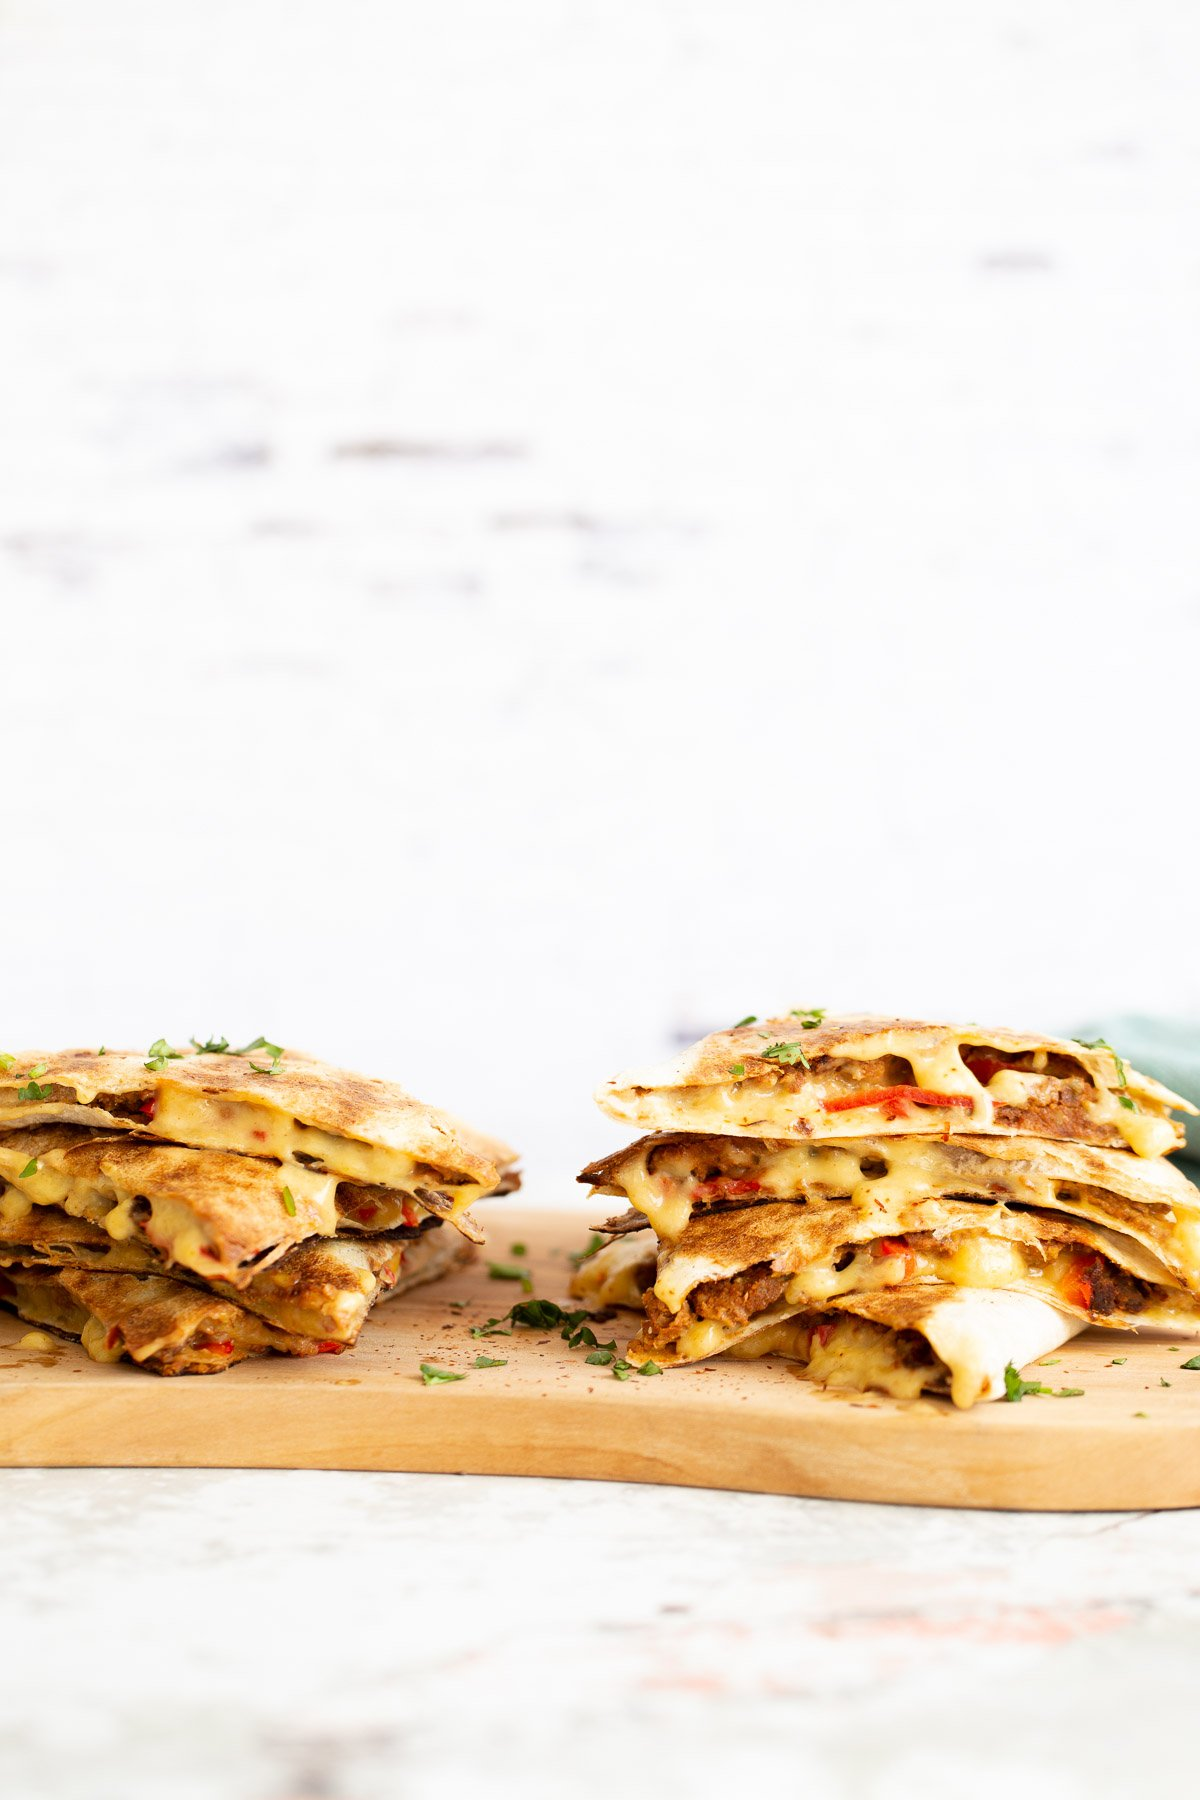 two stacks of quesadillas filled with vegan walnut taco meat on a chopping board